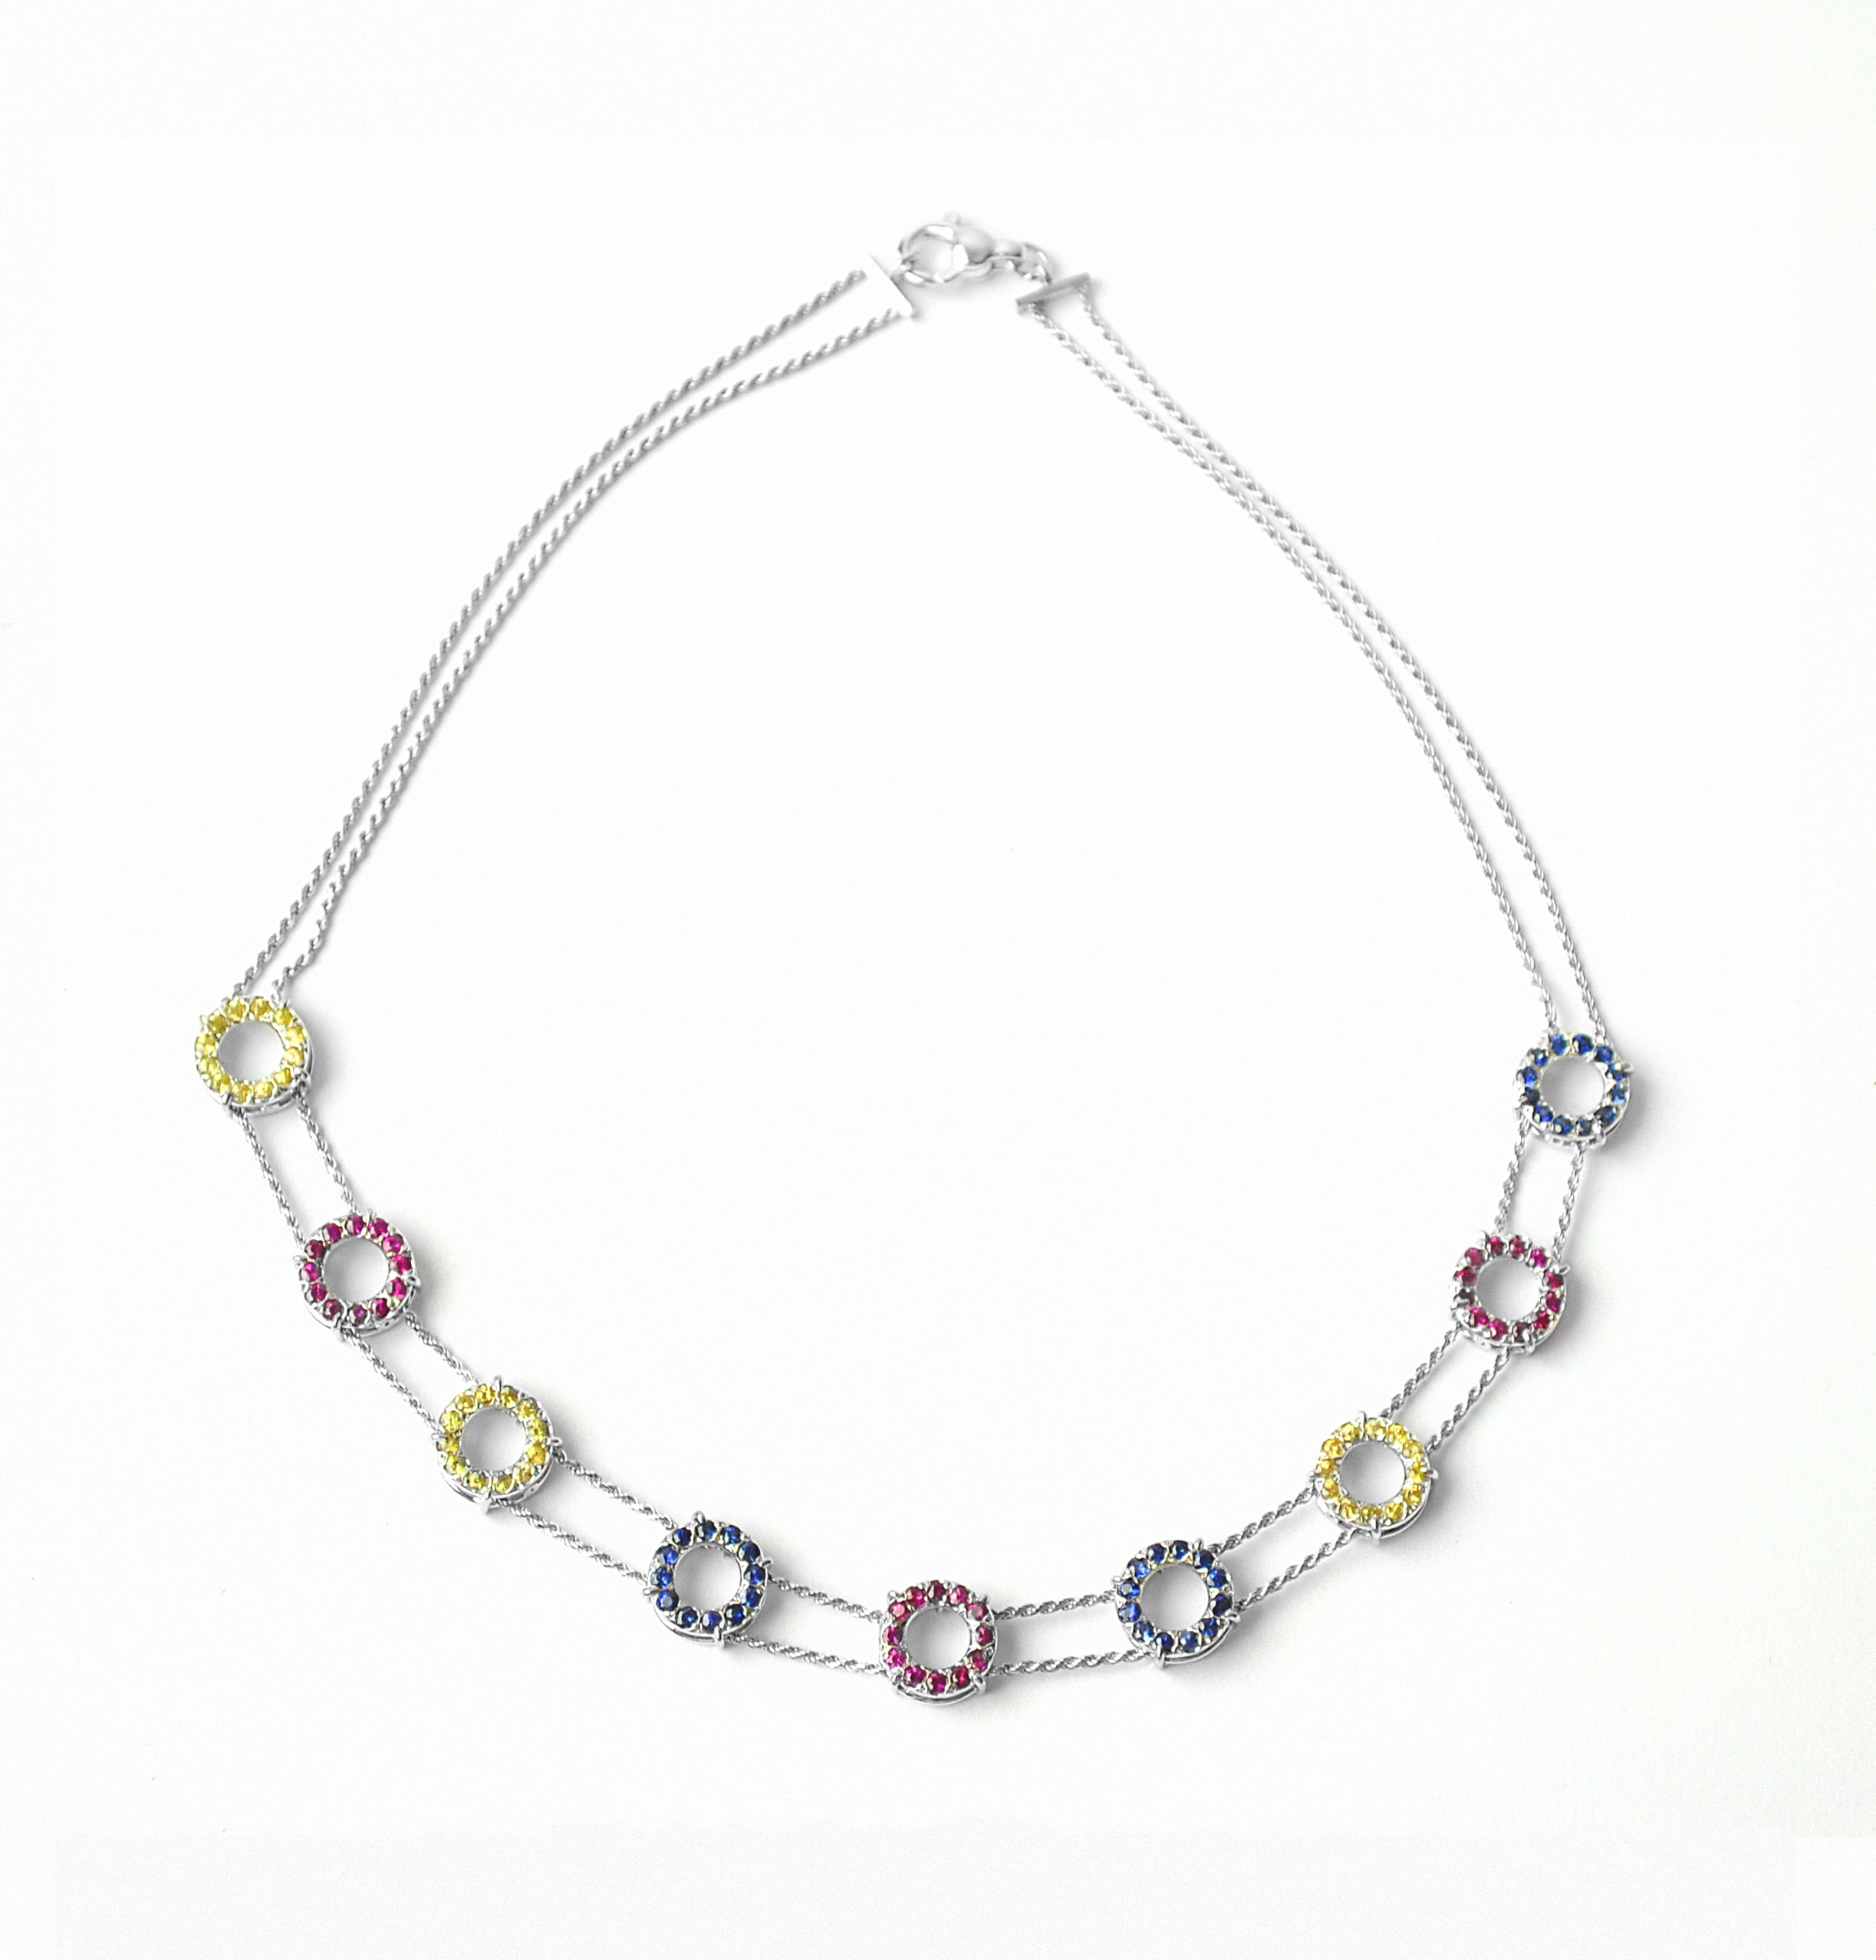 Necklace in white Gold chains and circle elements with yellow & blue Sapphires and Ruby ​​sapphires set.